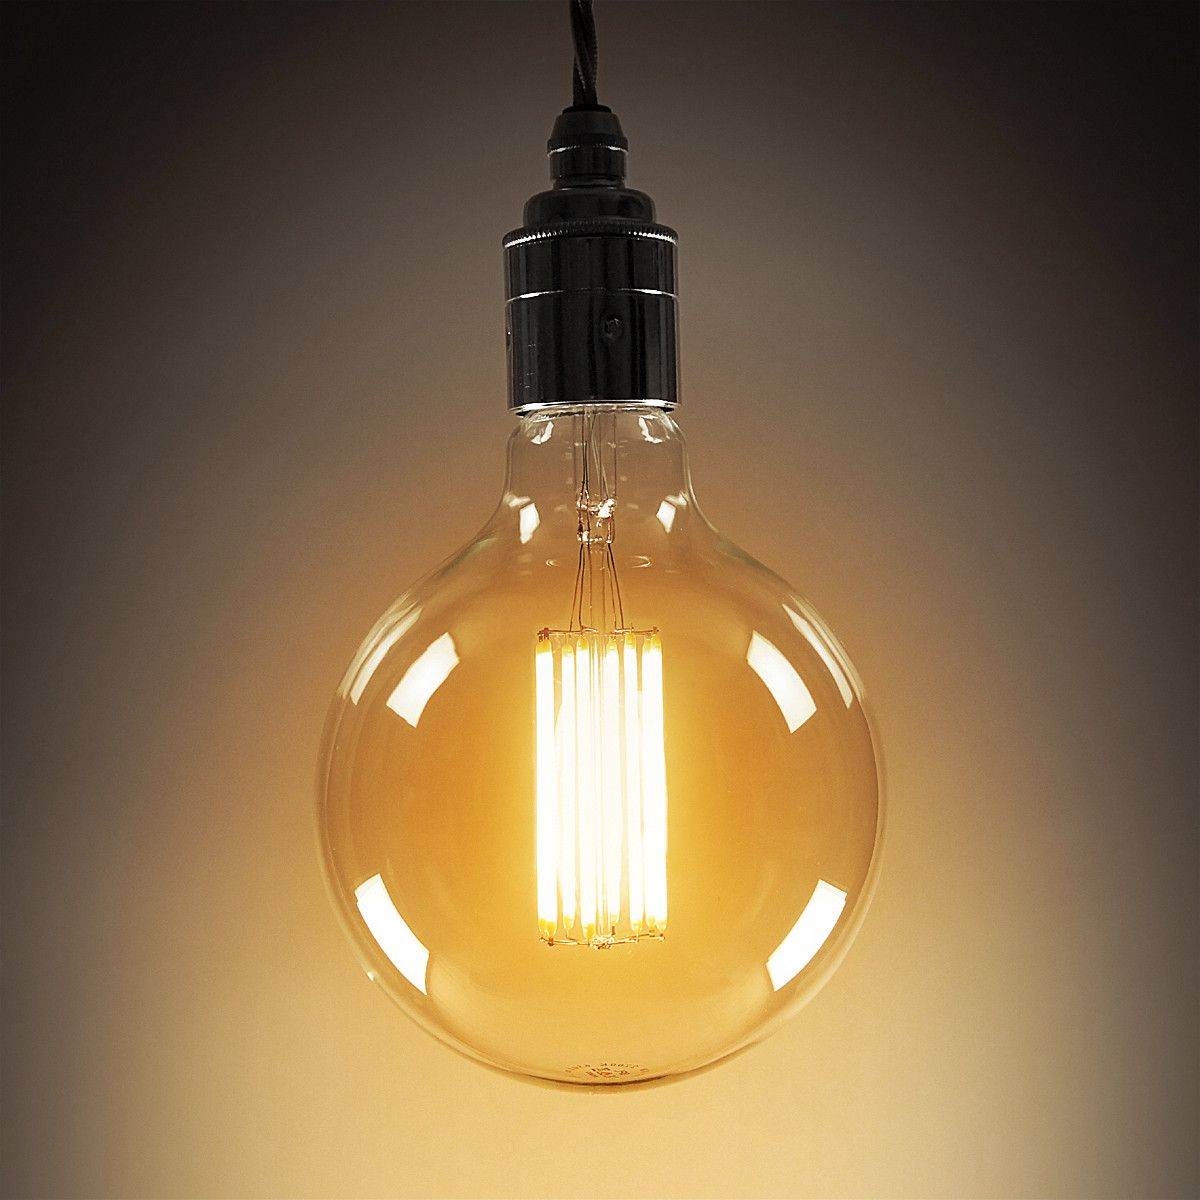 Led filament bulb large globe from smithson design led technology accent lighting bathroom